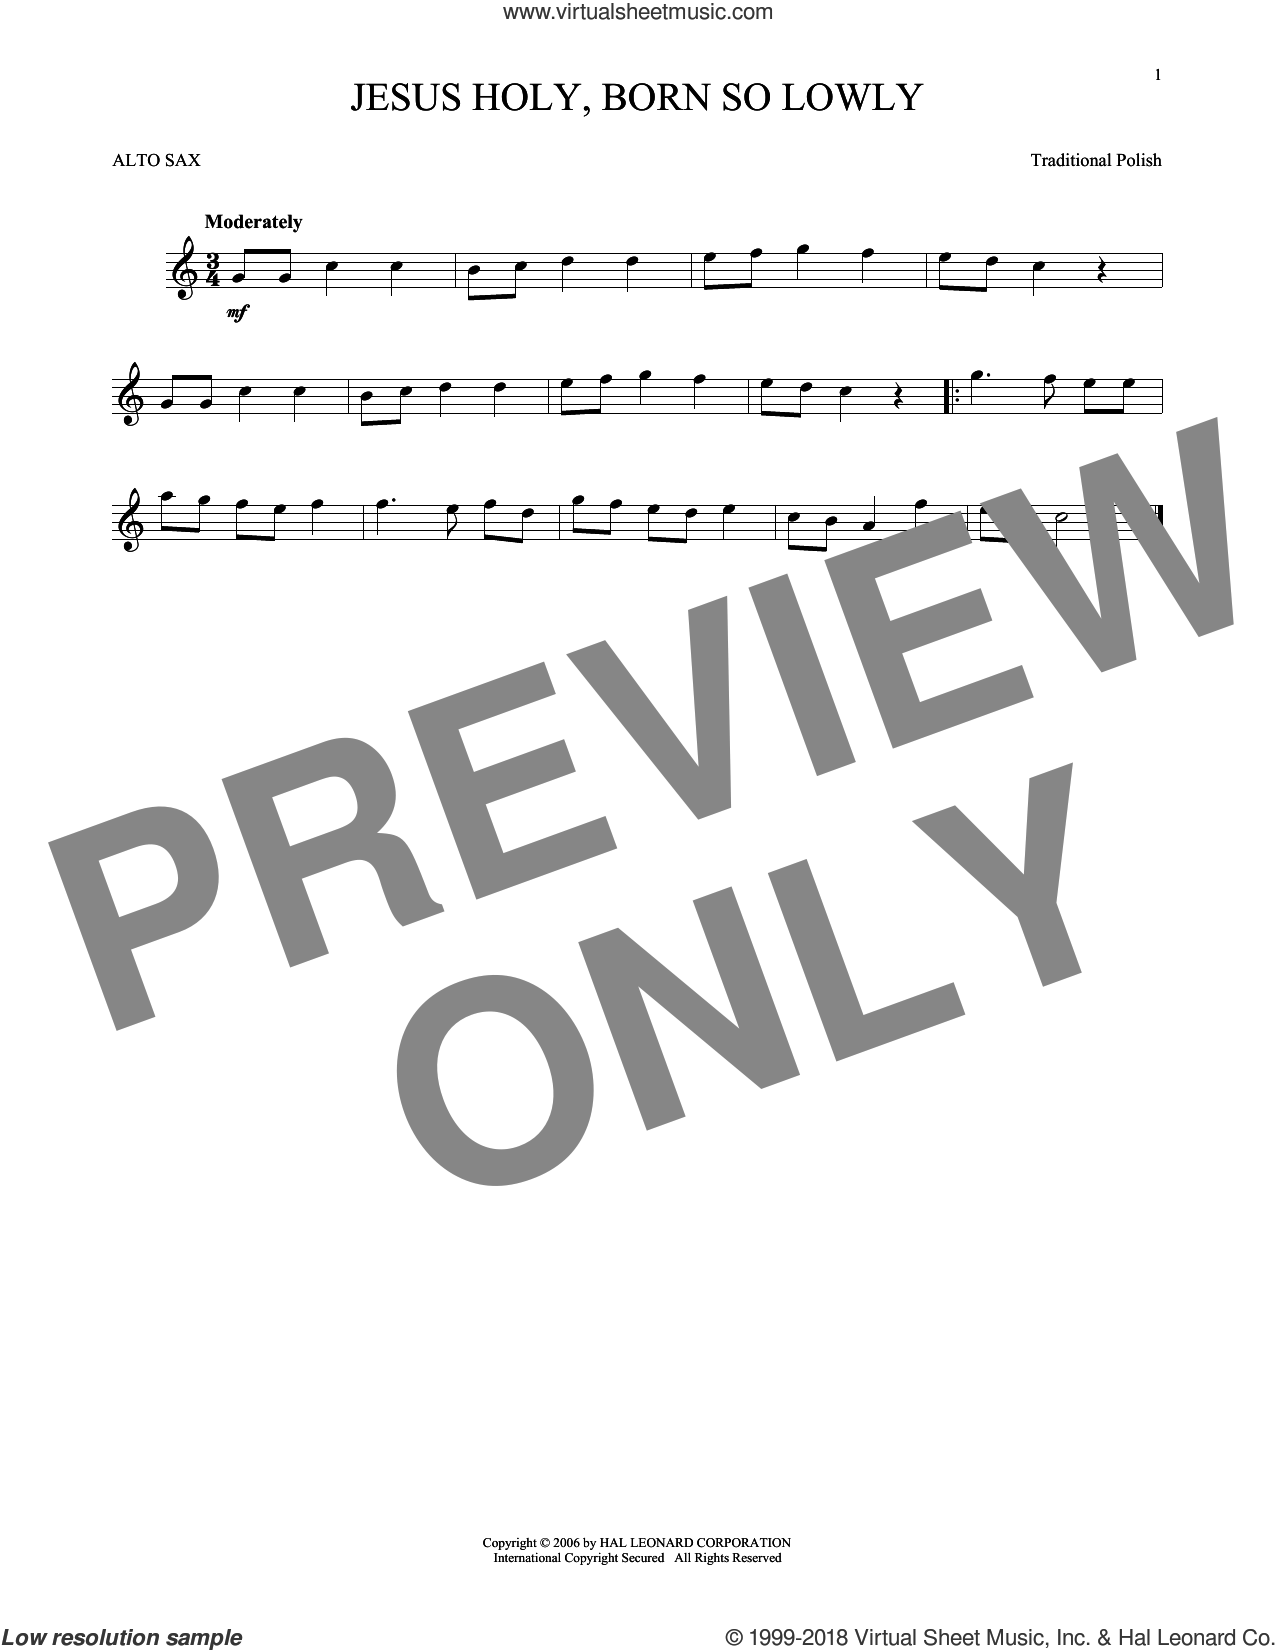 Jesus Holy, Born So Lowly sheet music for alto saxophone solo, intermediate skill level